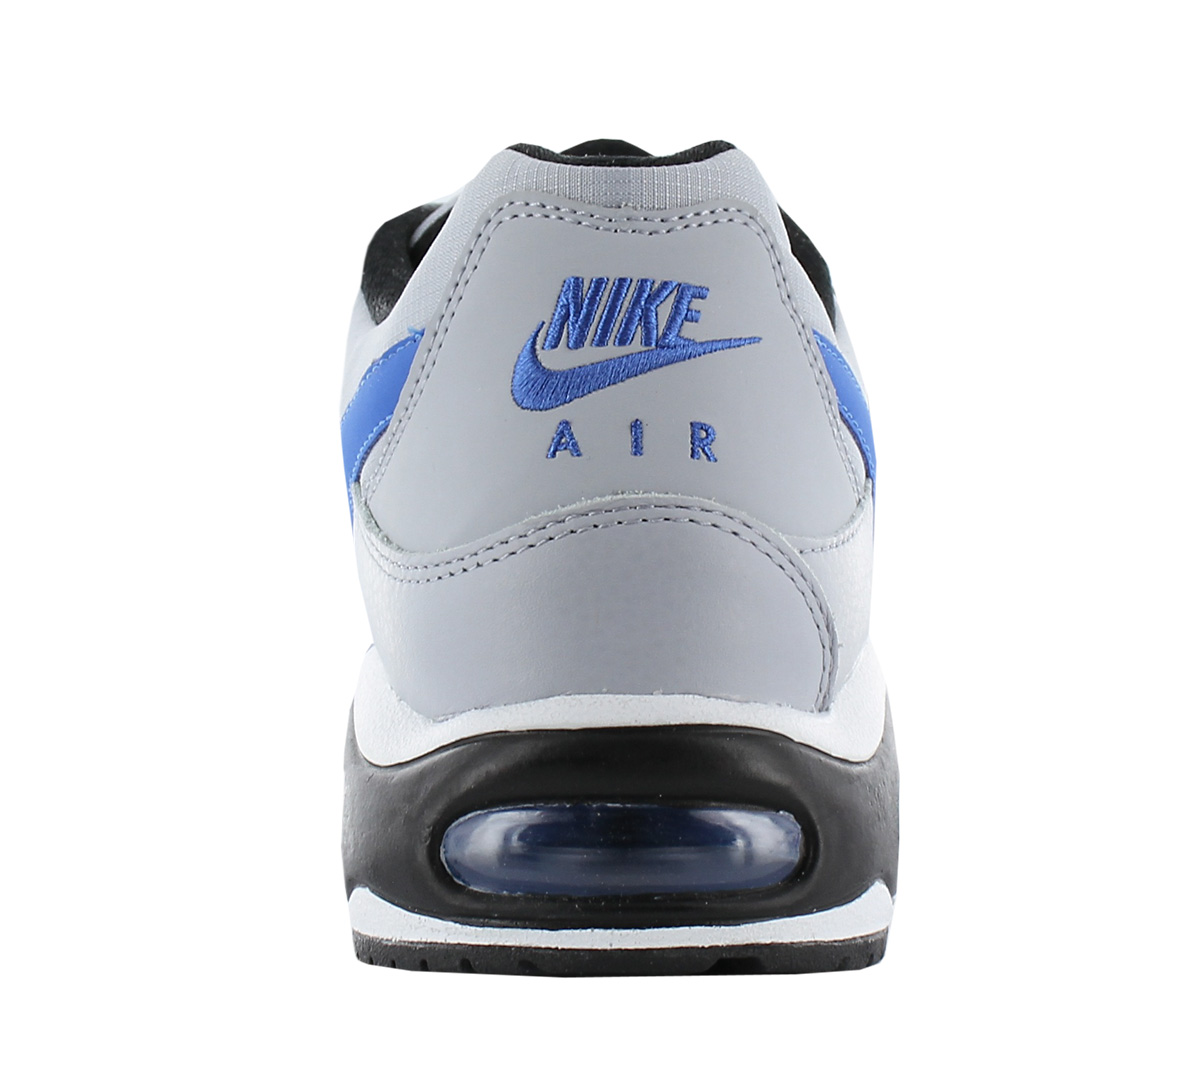 34c05f76 Nike Air Max Command Men's Sneakers Shoes Sneakers Grey Trainers ...